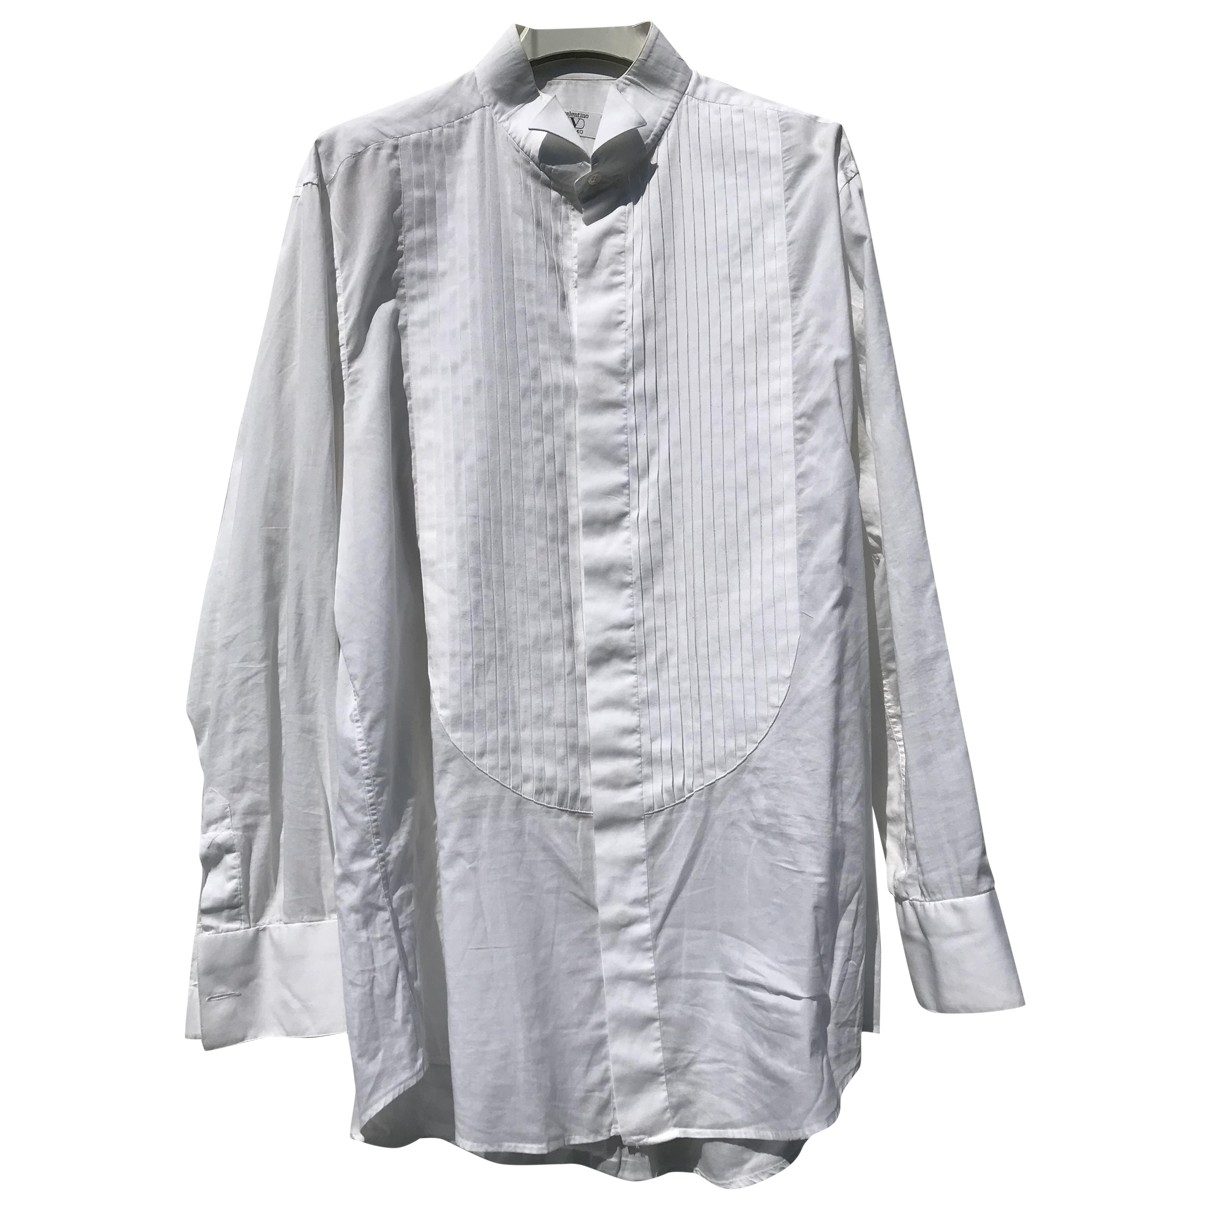 Valentino Garavani \N White Cotton Shirts for Men 40 EU (tour de cou / collar)